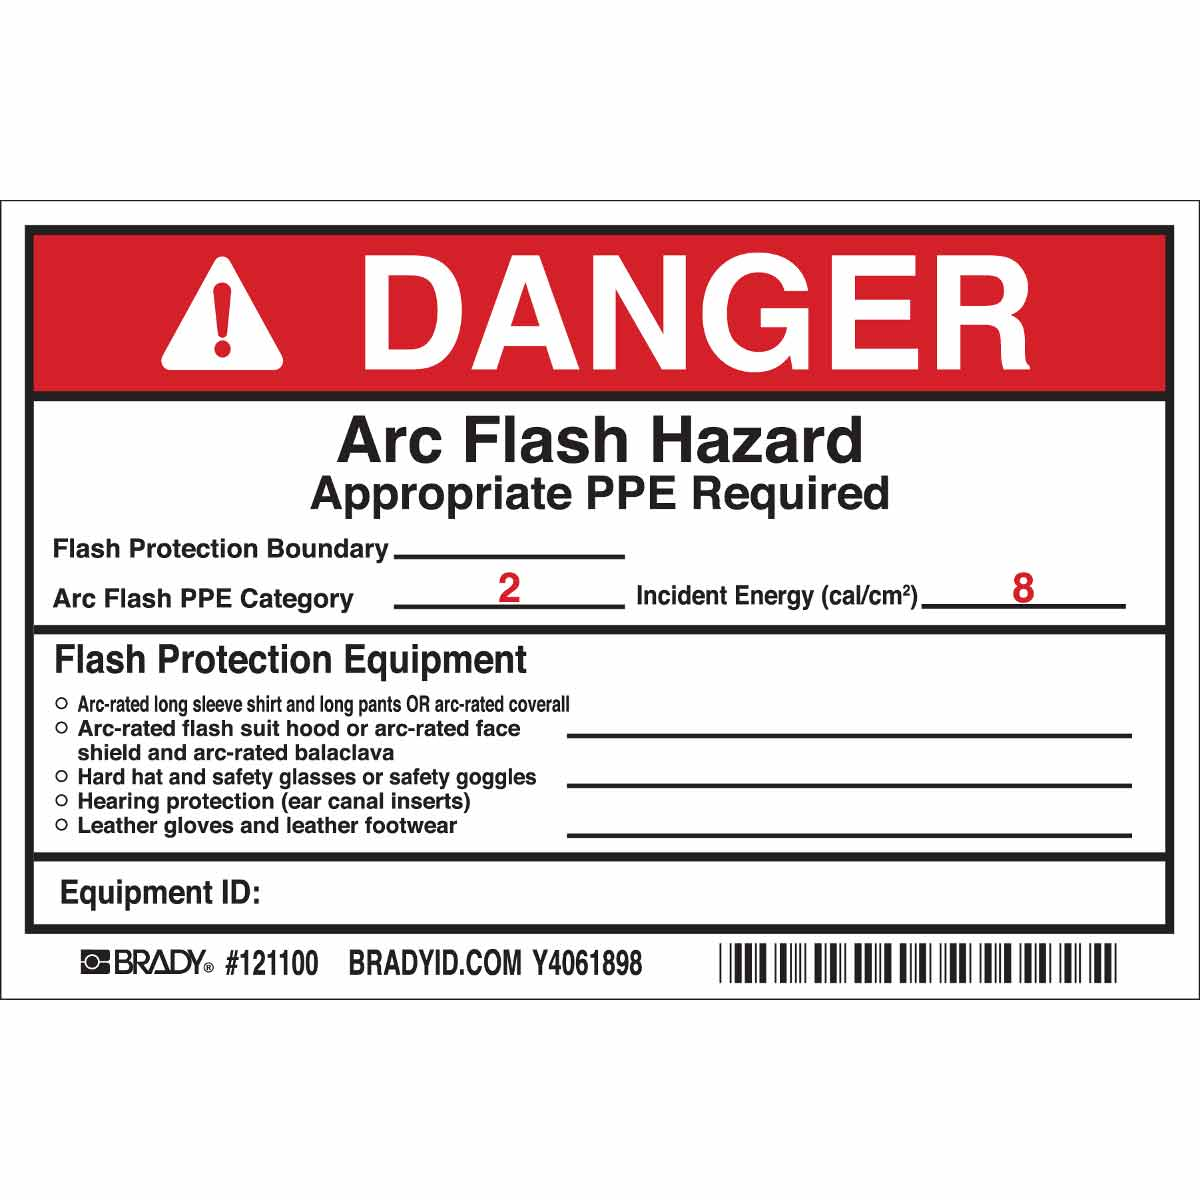 DANGER Flash Protection Boundary Arc Flash PPE Category 2 Incident ...